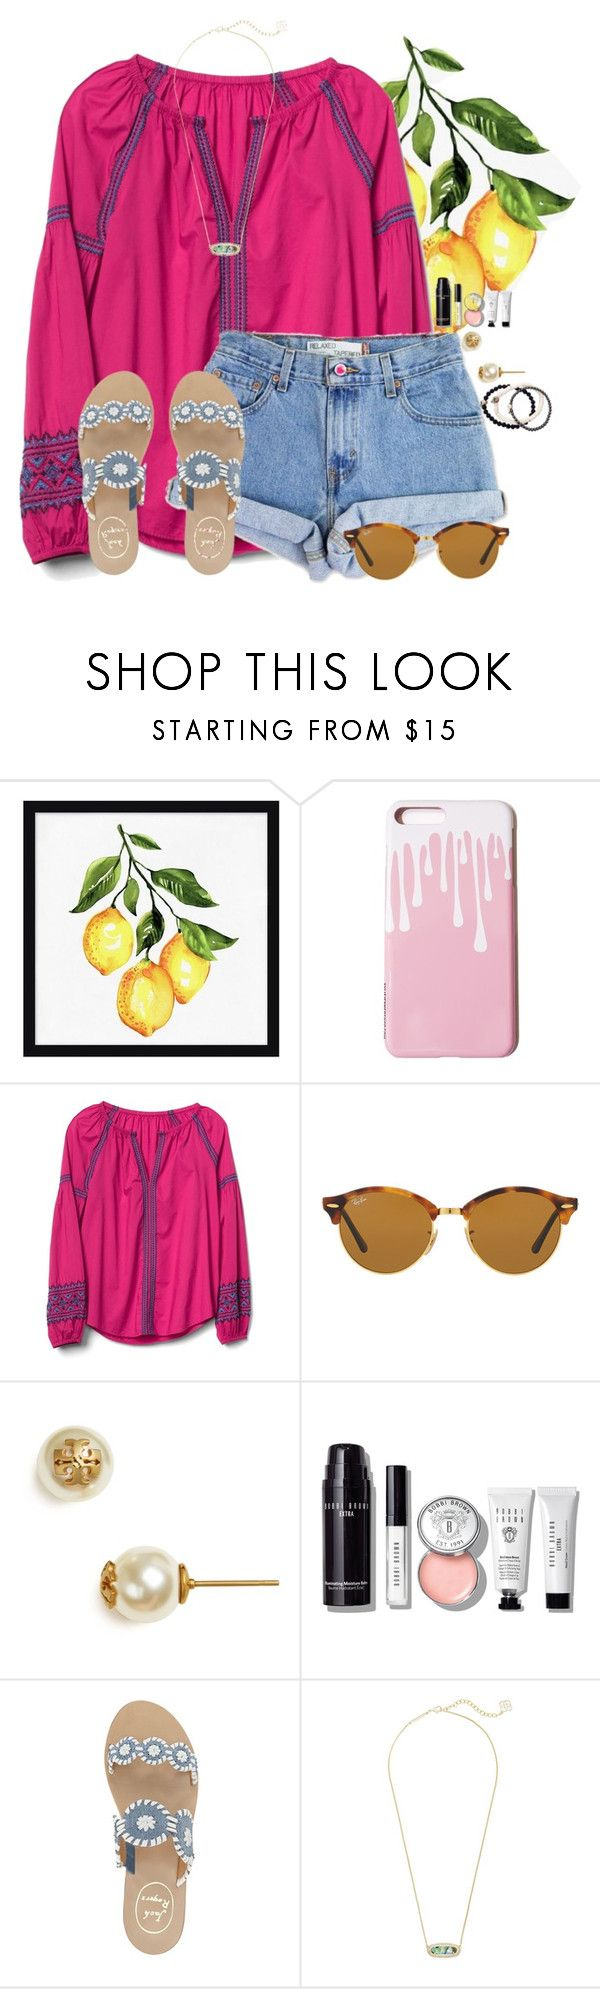 """""""~find me under the palms~"""" by flroasburn on Polyvore featuring Pottery Barn, Gap, Levi's, Ray-Ban, Tory Burch, Bobbi Brown Cosmetics, Jack Rogers, Kendra Scott and Duchess of Malfi"""